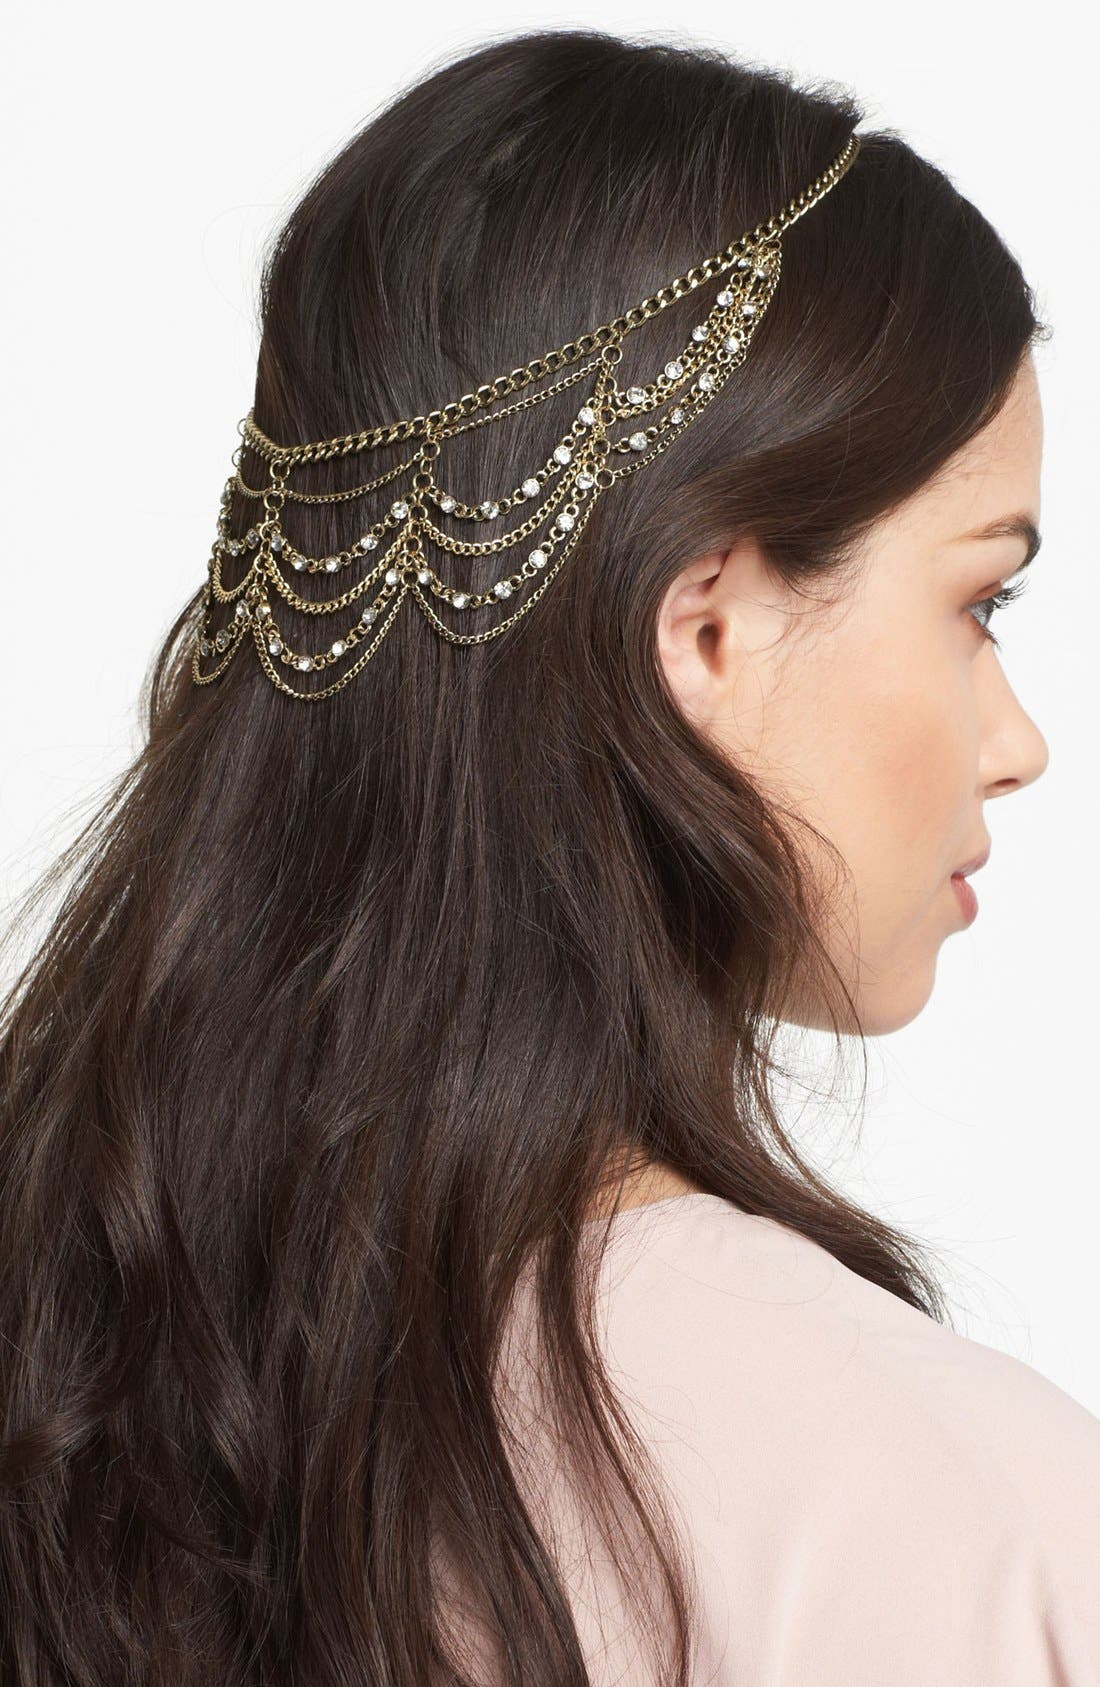 Alternate Image 1 Selected - Orion 'Empress' Chain Head Wrap